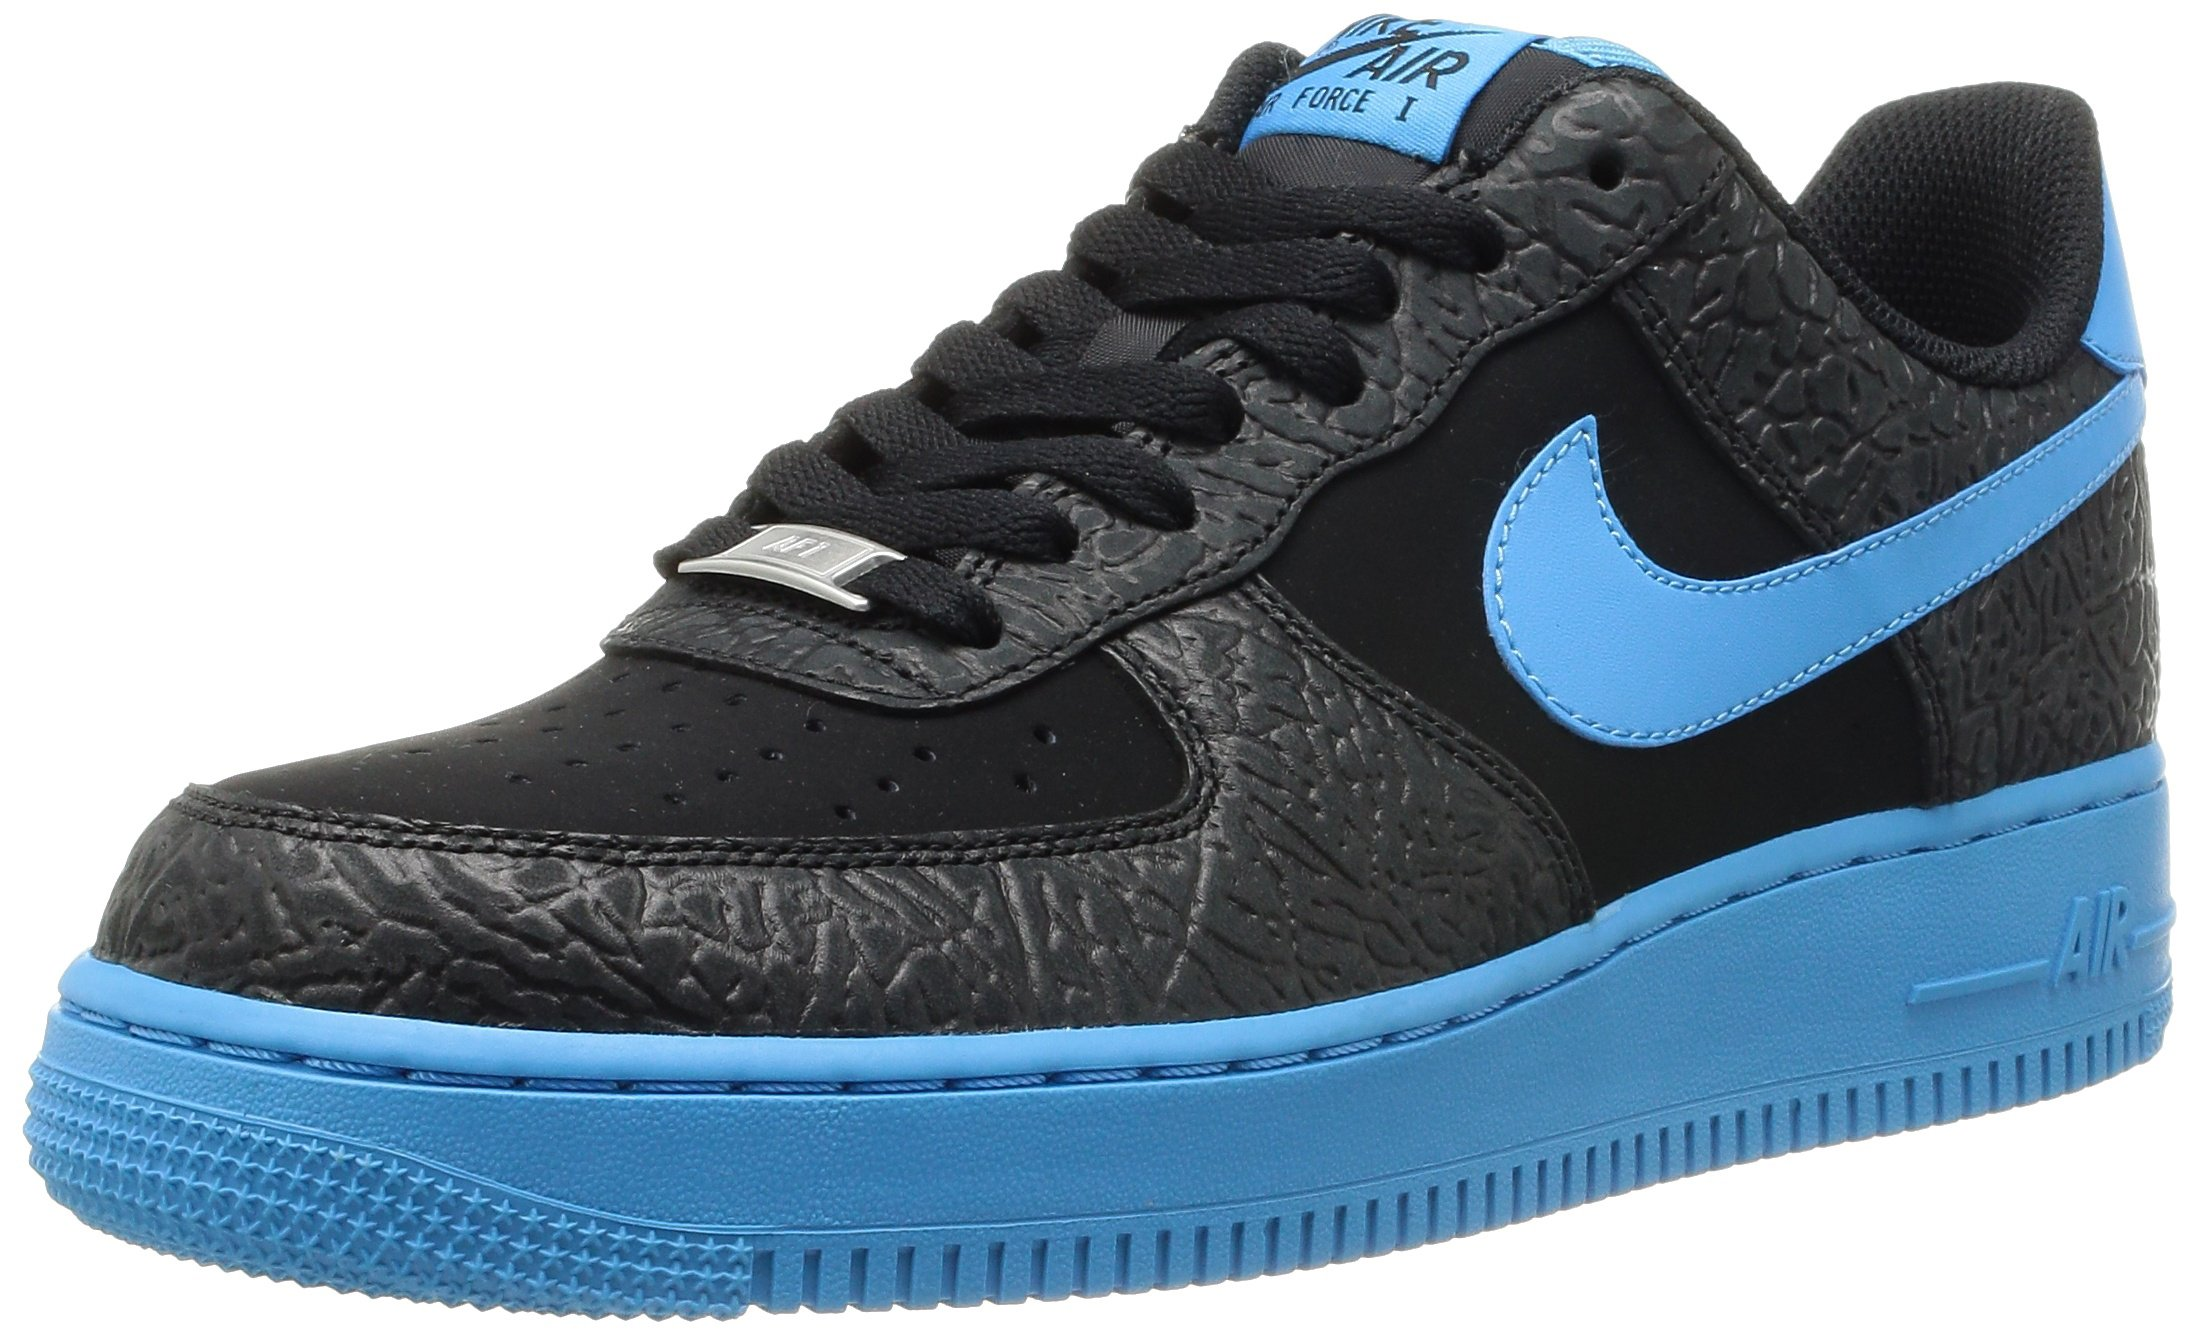 Nike Air Force 1 Mens Basketball Shoes Color: Black / Vivid Blue